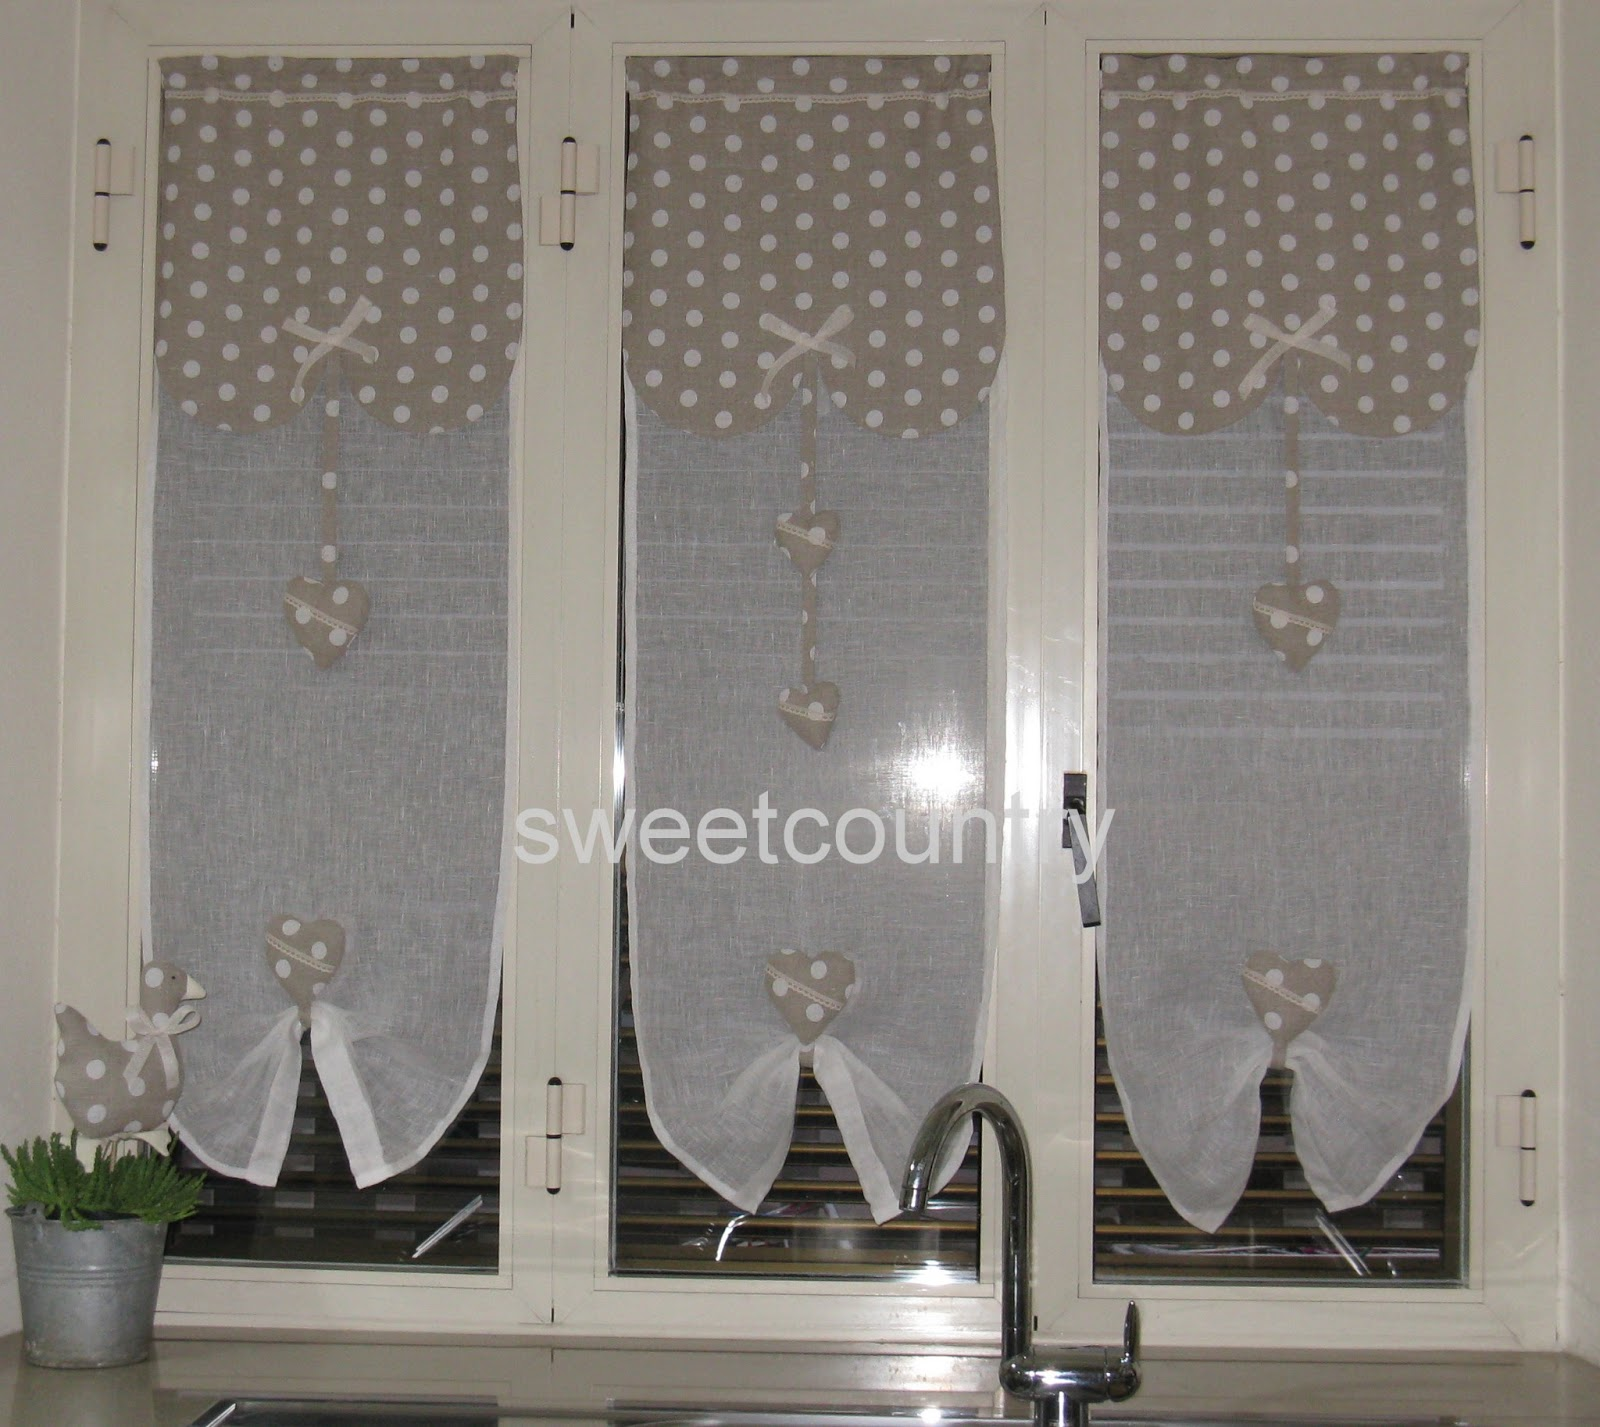 Sweetcountry tende country for Tende cucina